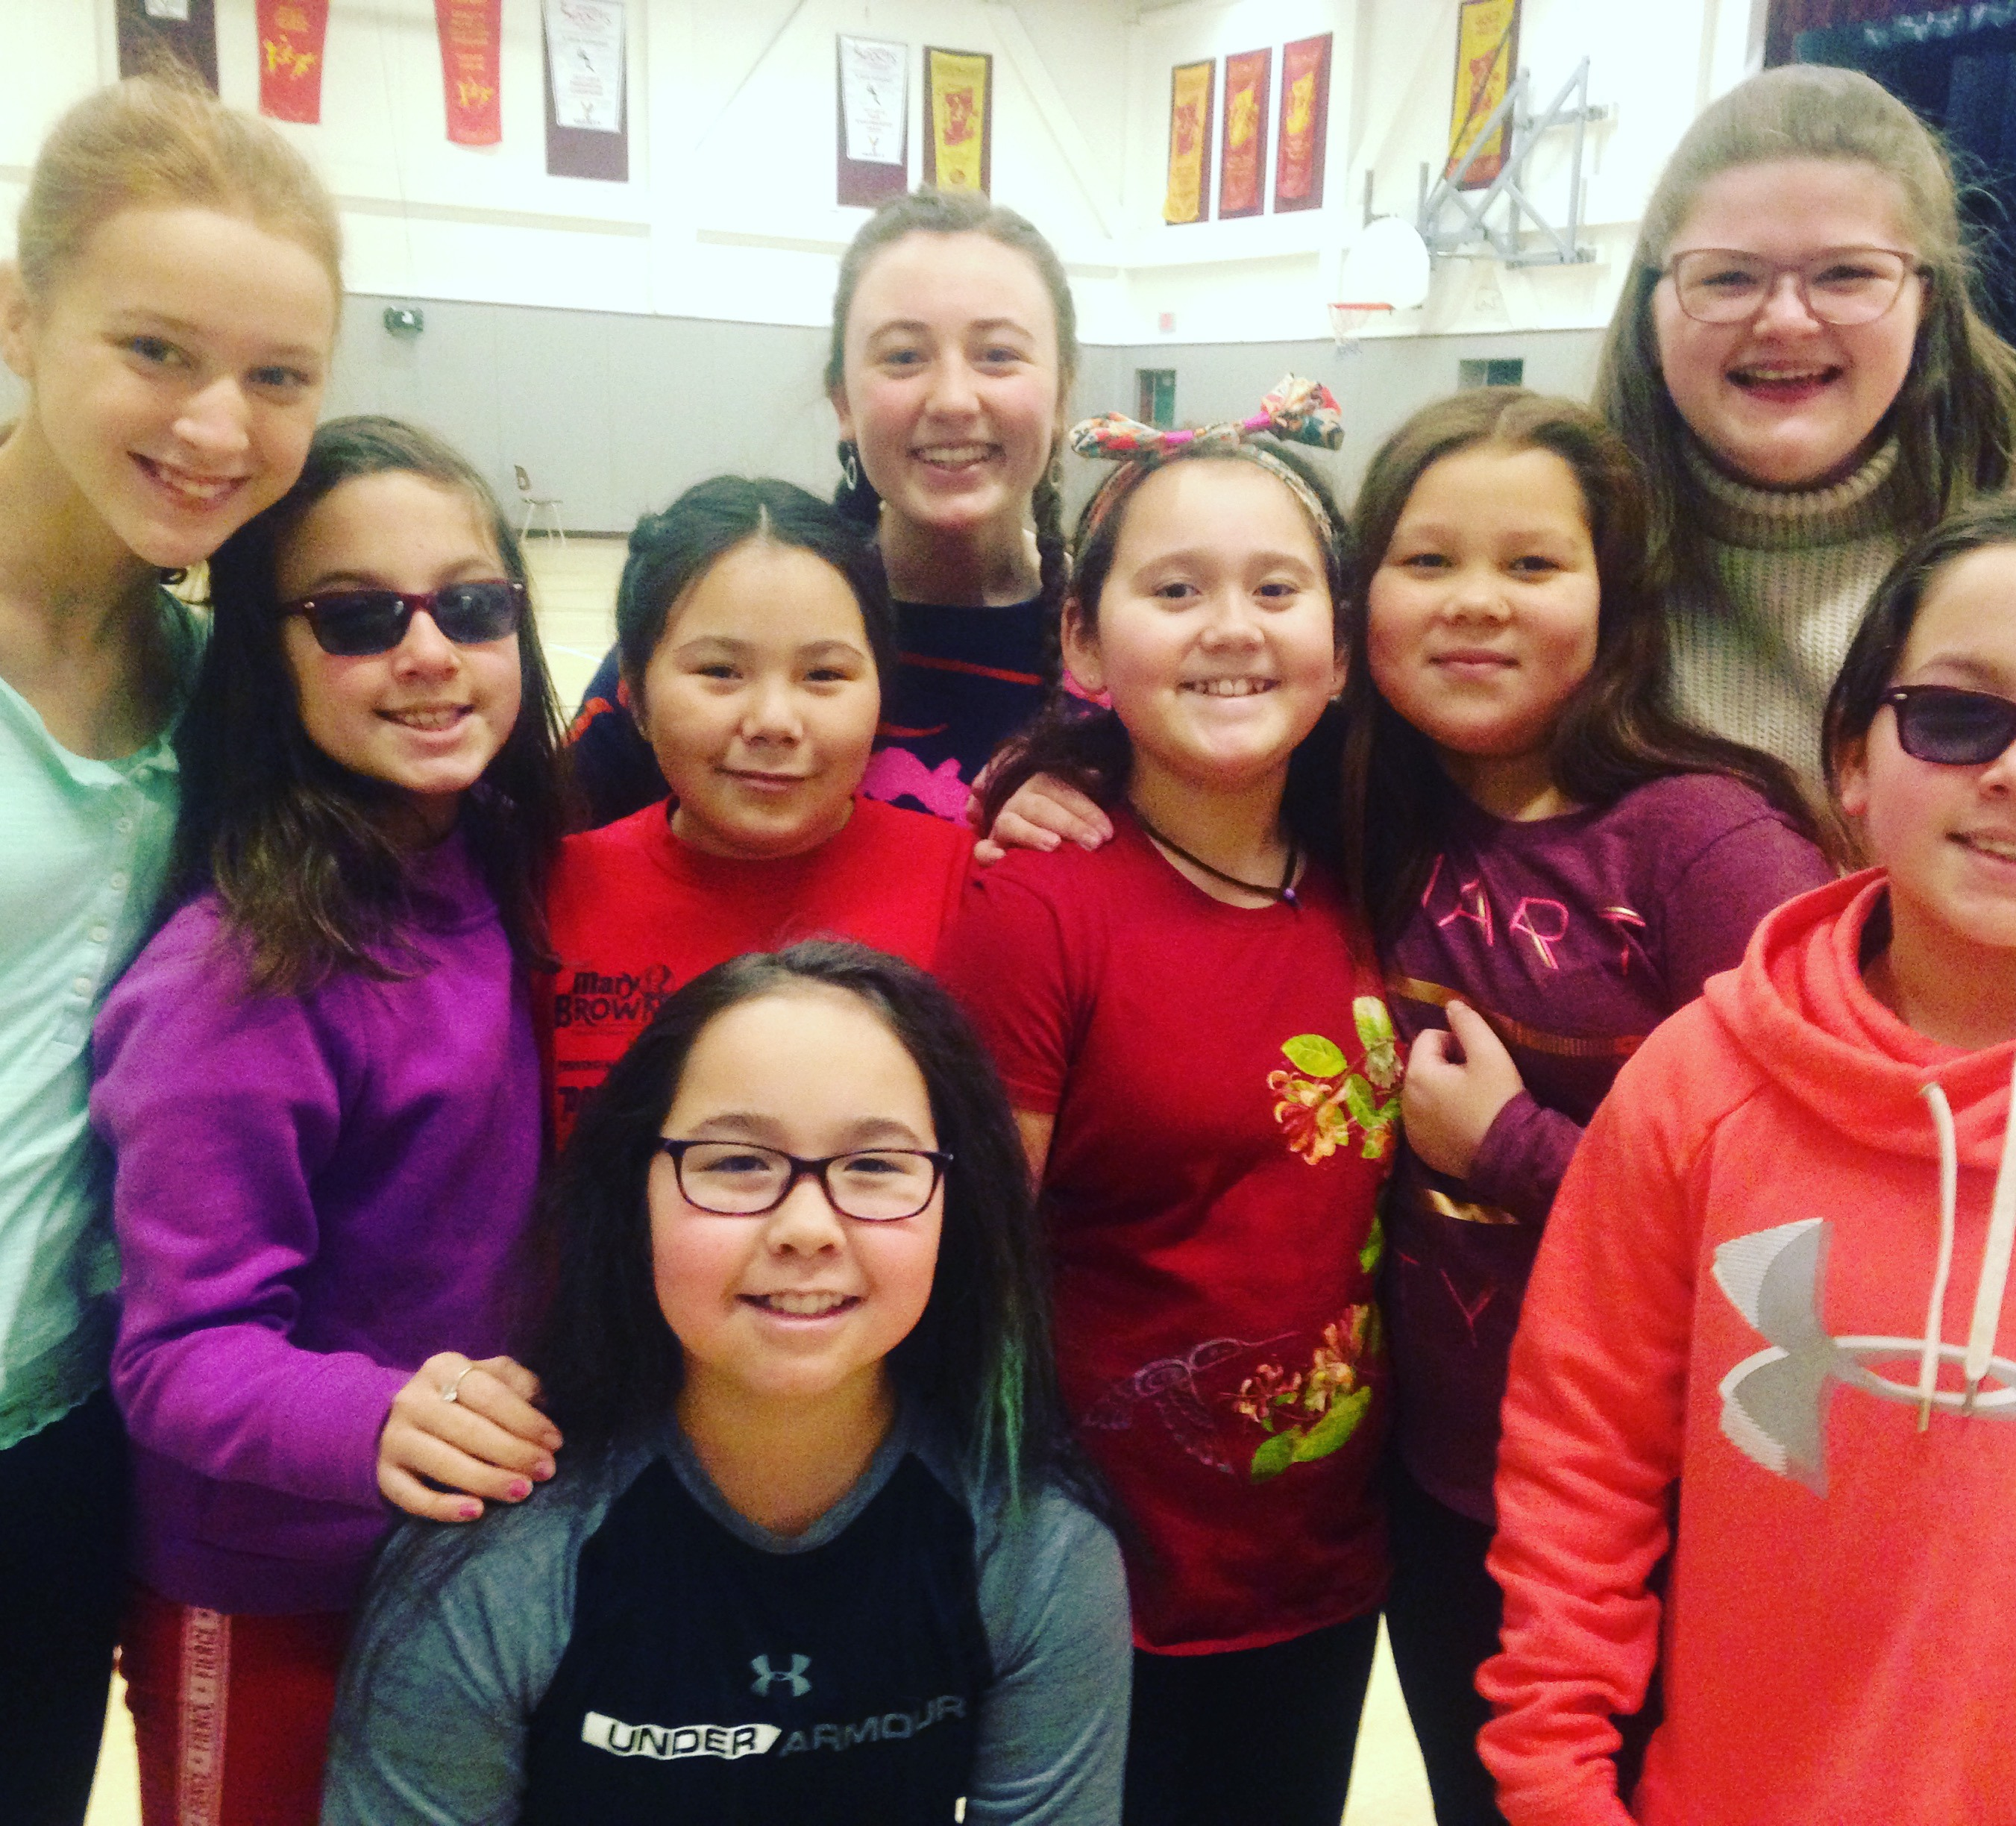 Pan Labrador Choir is full of smiles. (Angela Antle/CBC)